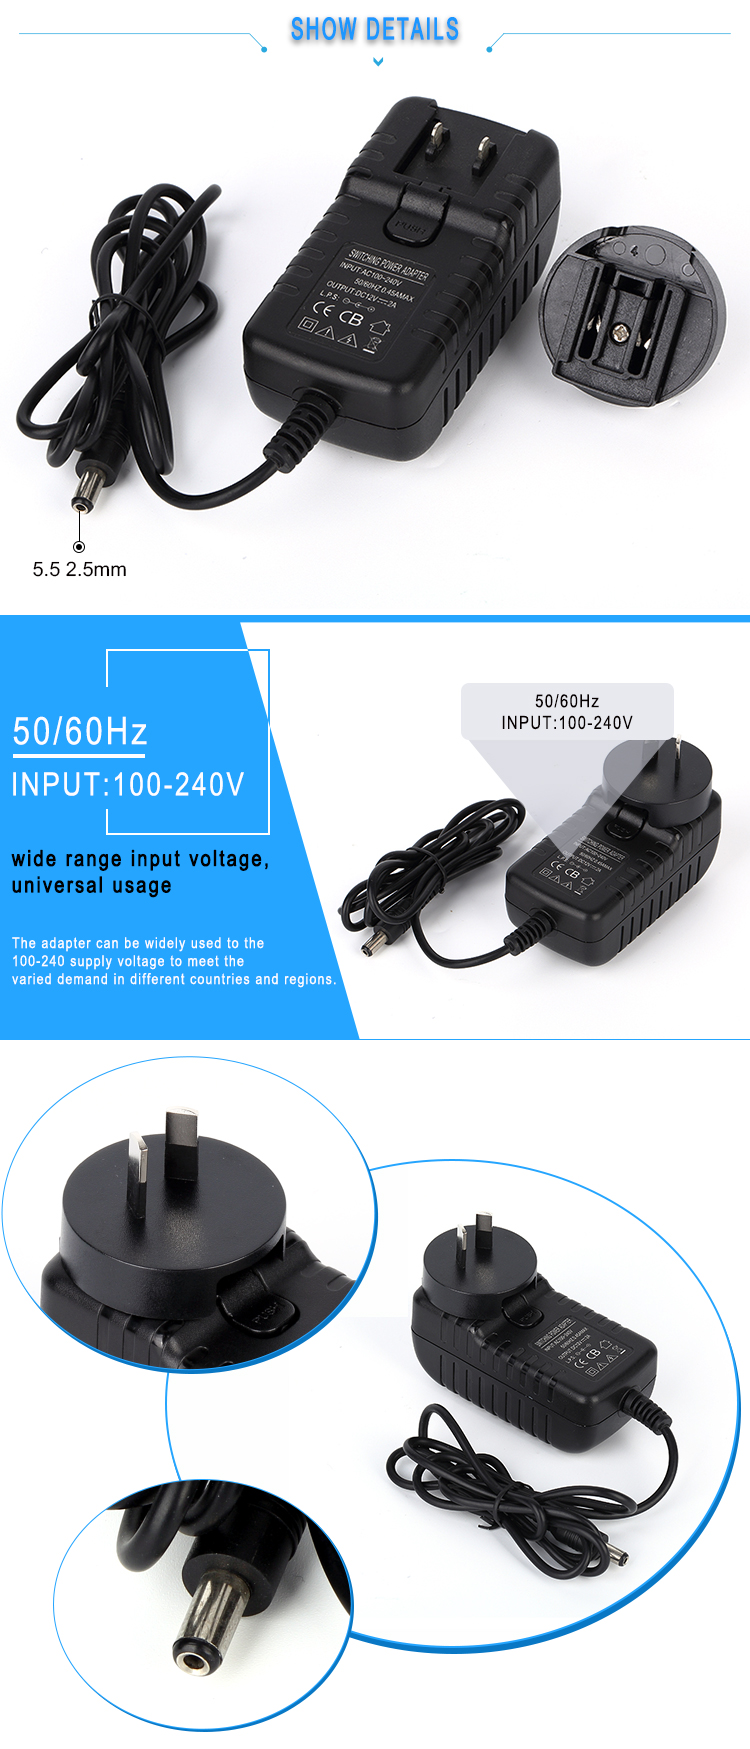 PC-050020 5V 2A wall power adapter 5V 10W interchangetable plug power adapter